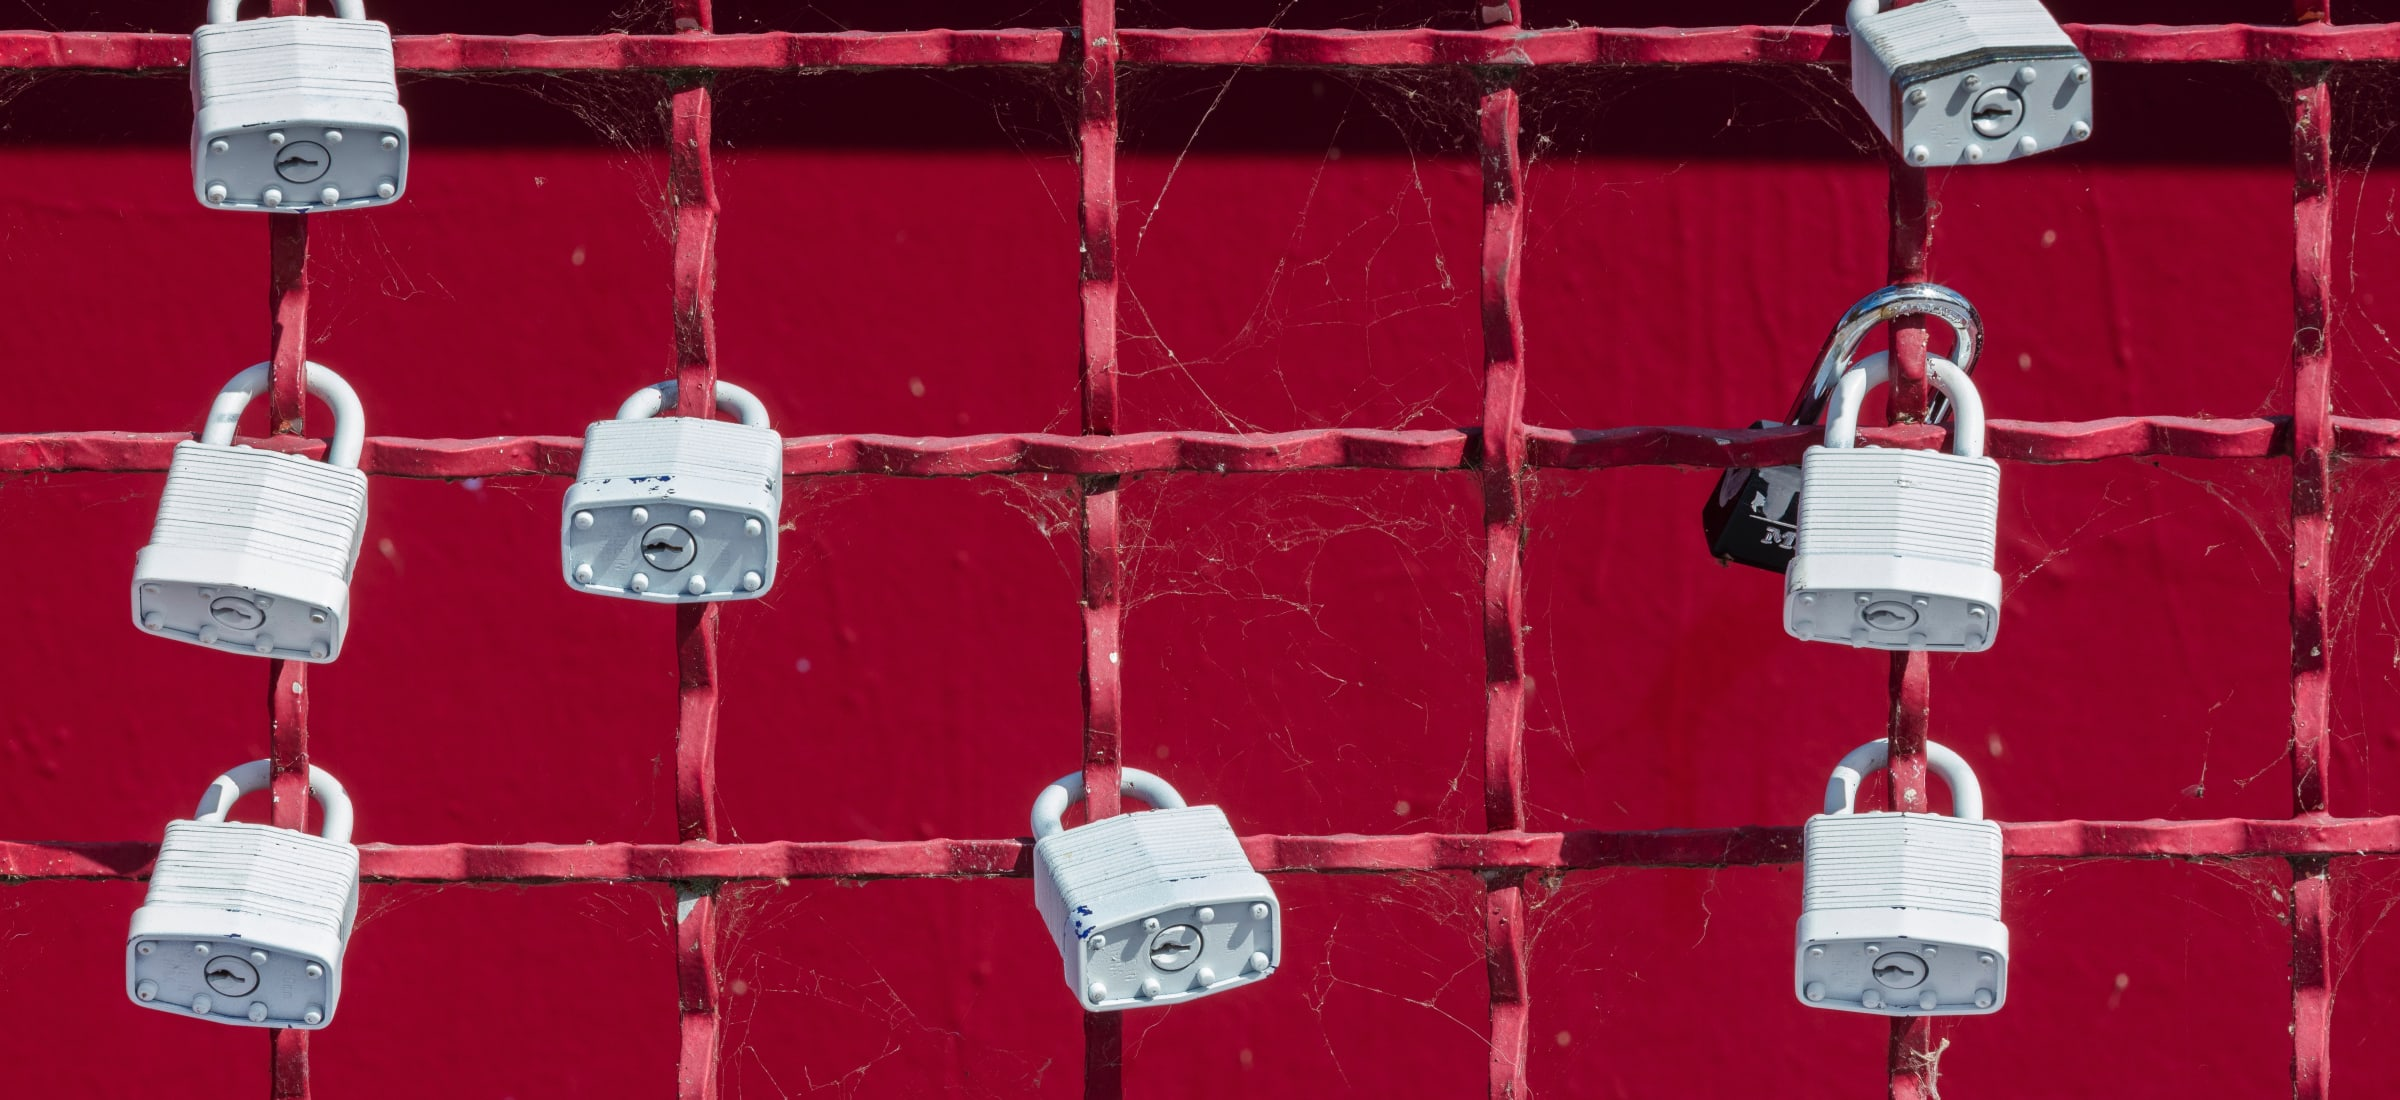 Padlocks on red fence